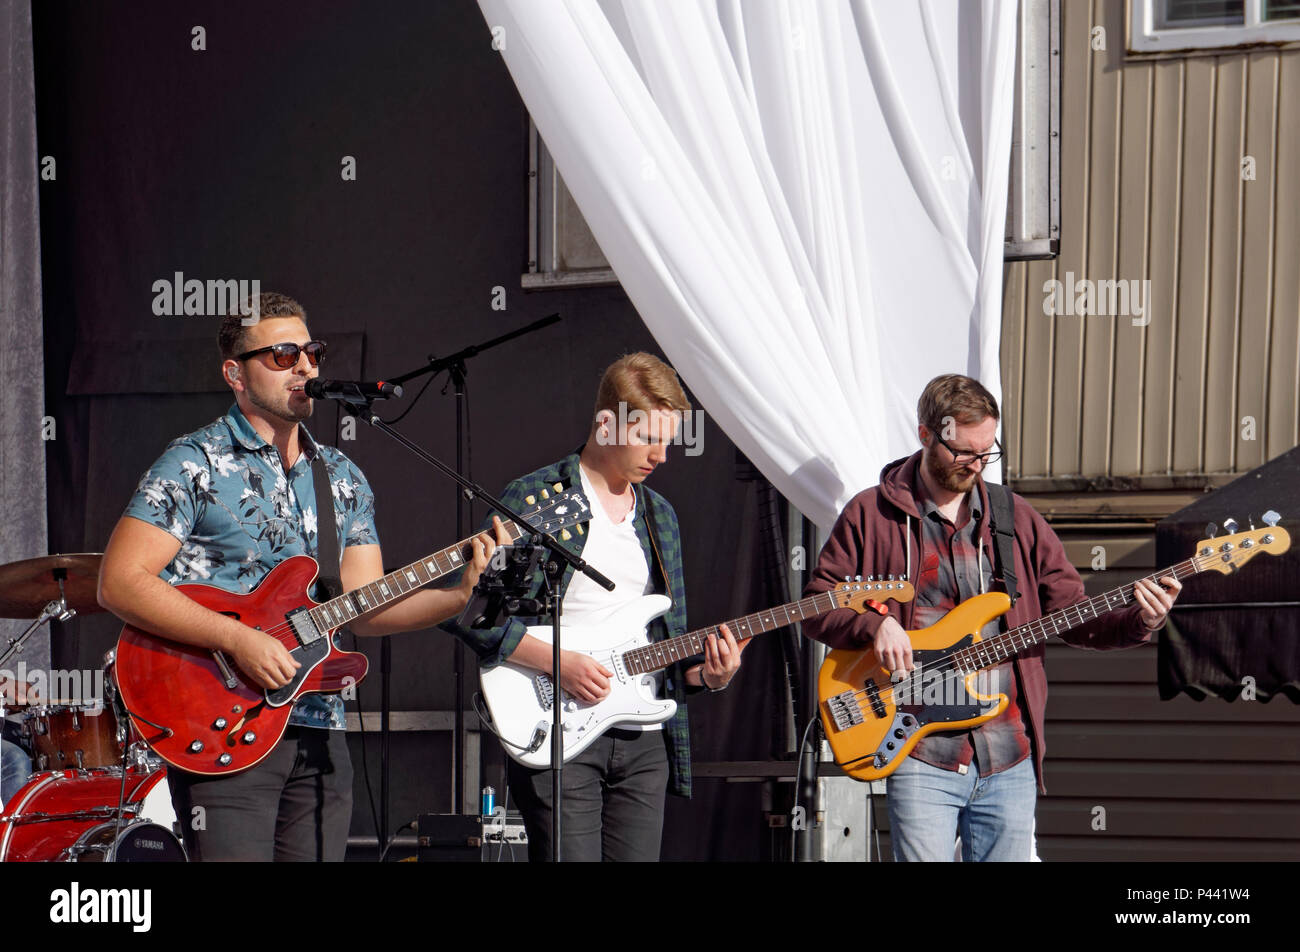 antonio-larosa-and-his-rock-band-perform